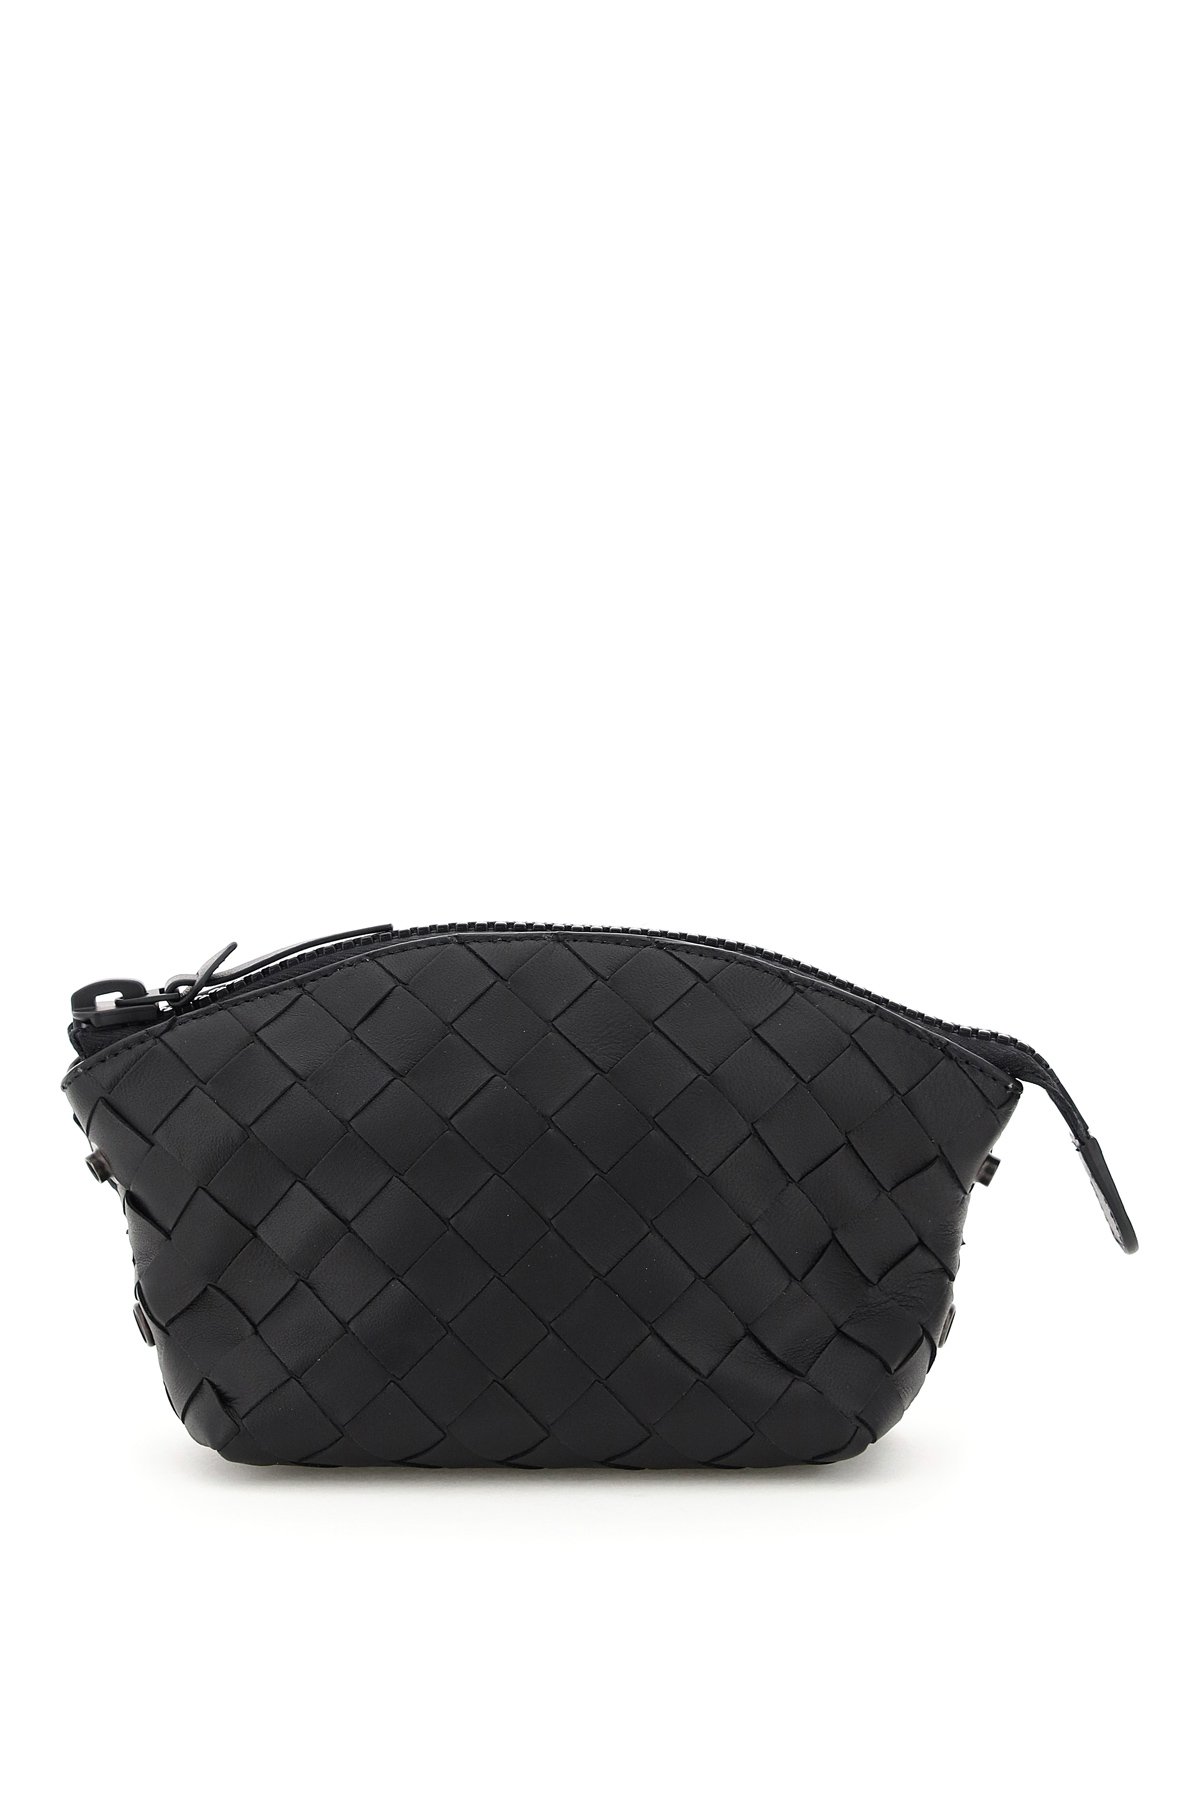 BOTTEGA VENETA PACKABLE TOTE BAG WITH POUCH OS Black Leather, Technical